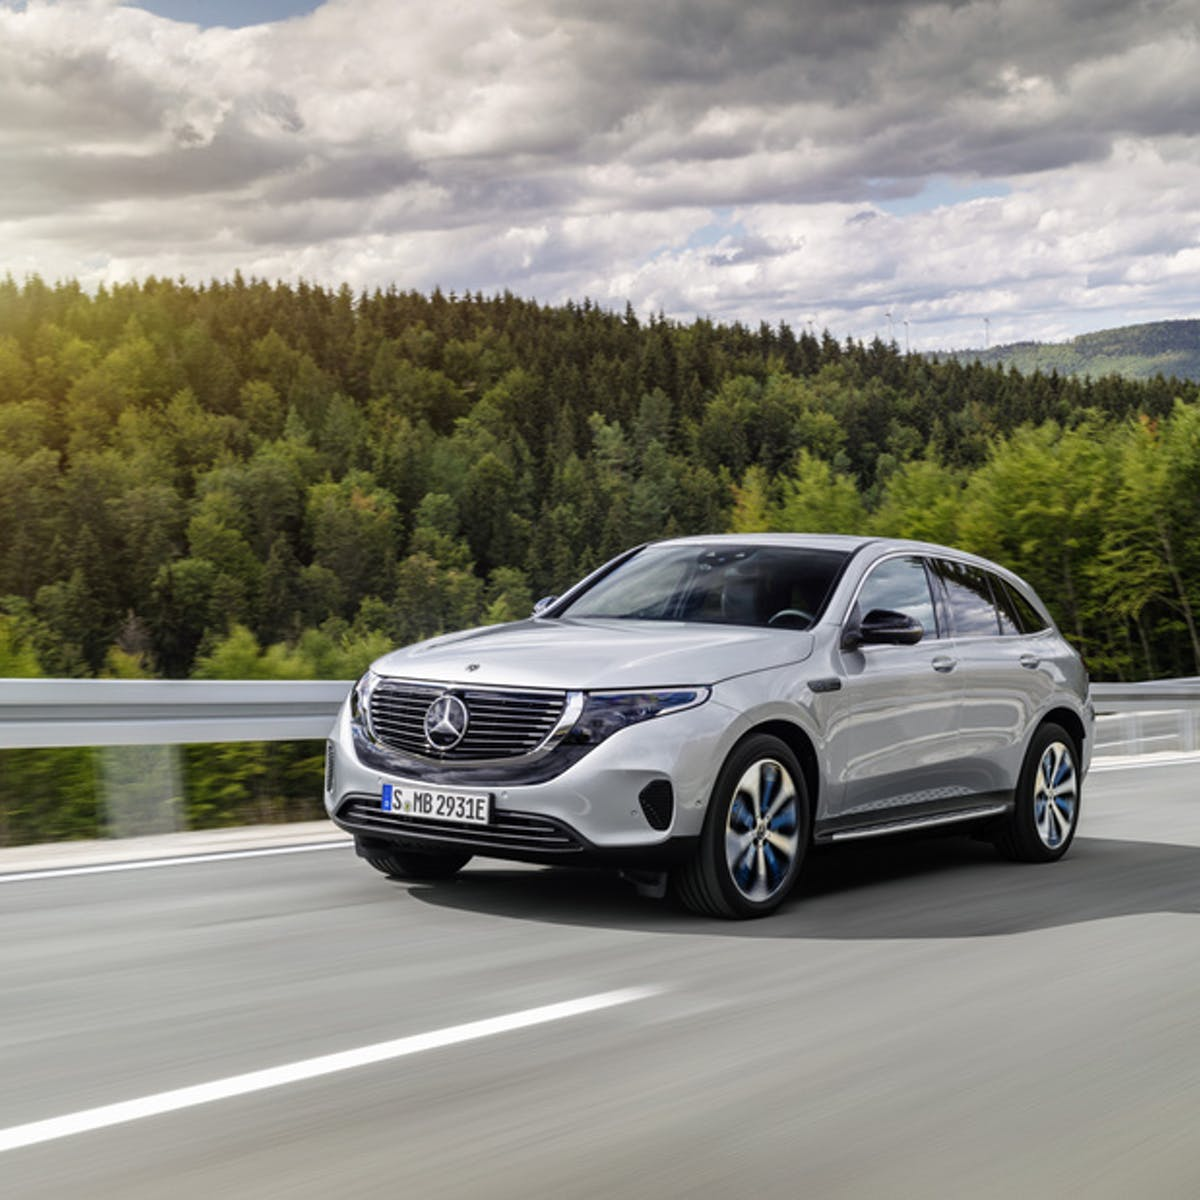 Mercedes Benz Launches The Eqc A Fully Electric Suv To Compete With Tesla